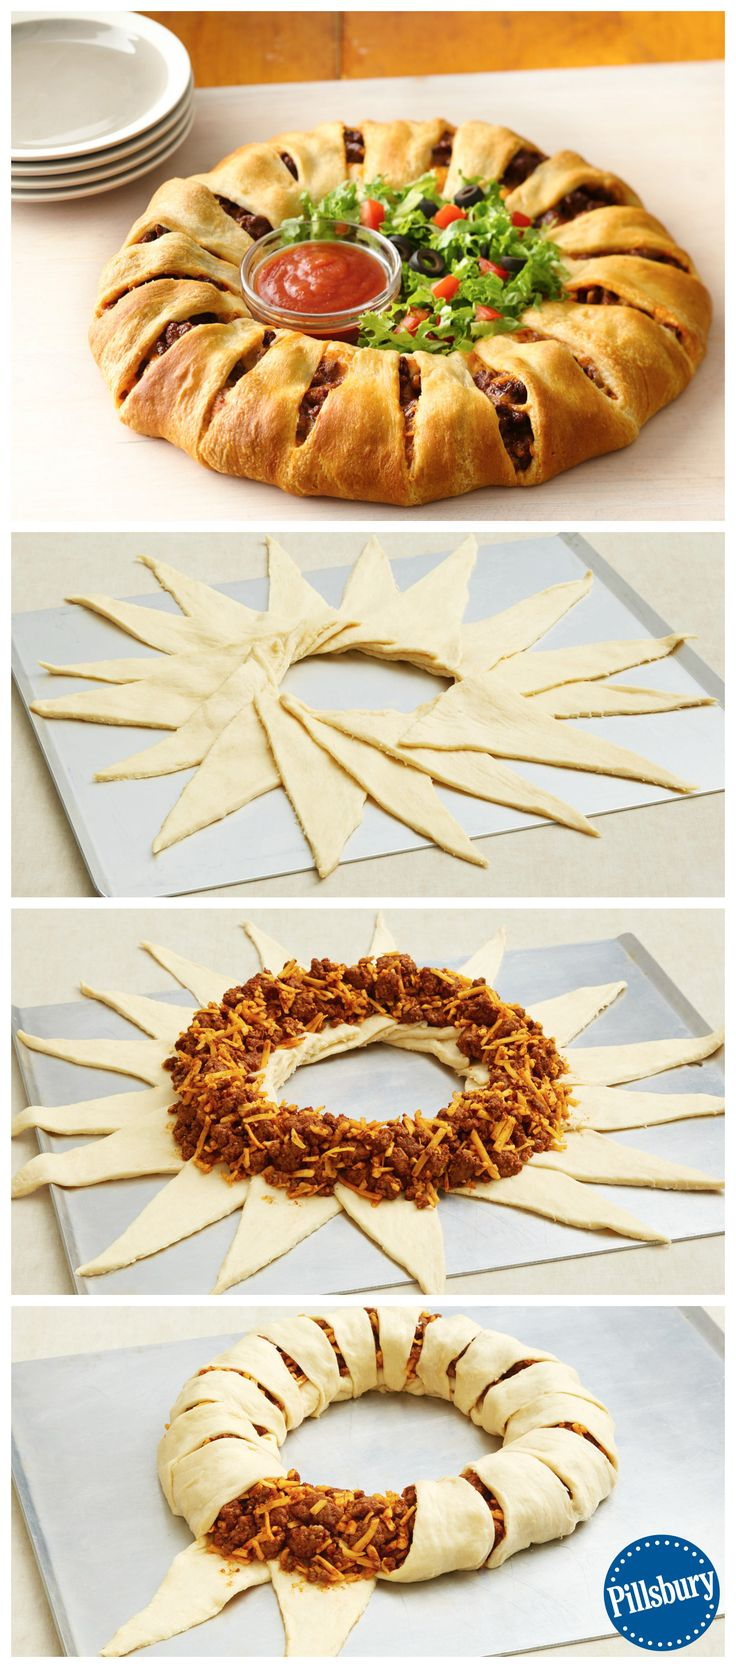 Create a fun new twist on a classic with this Taco Crescent Ring! Dress it with fresh lettuce and salsa for a fun fiesta night.